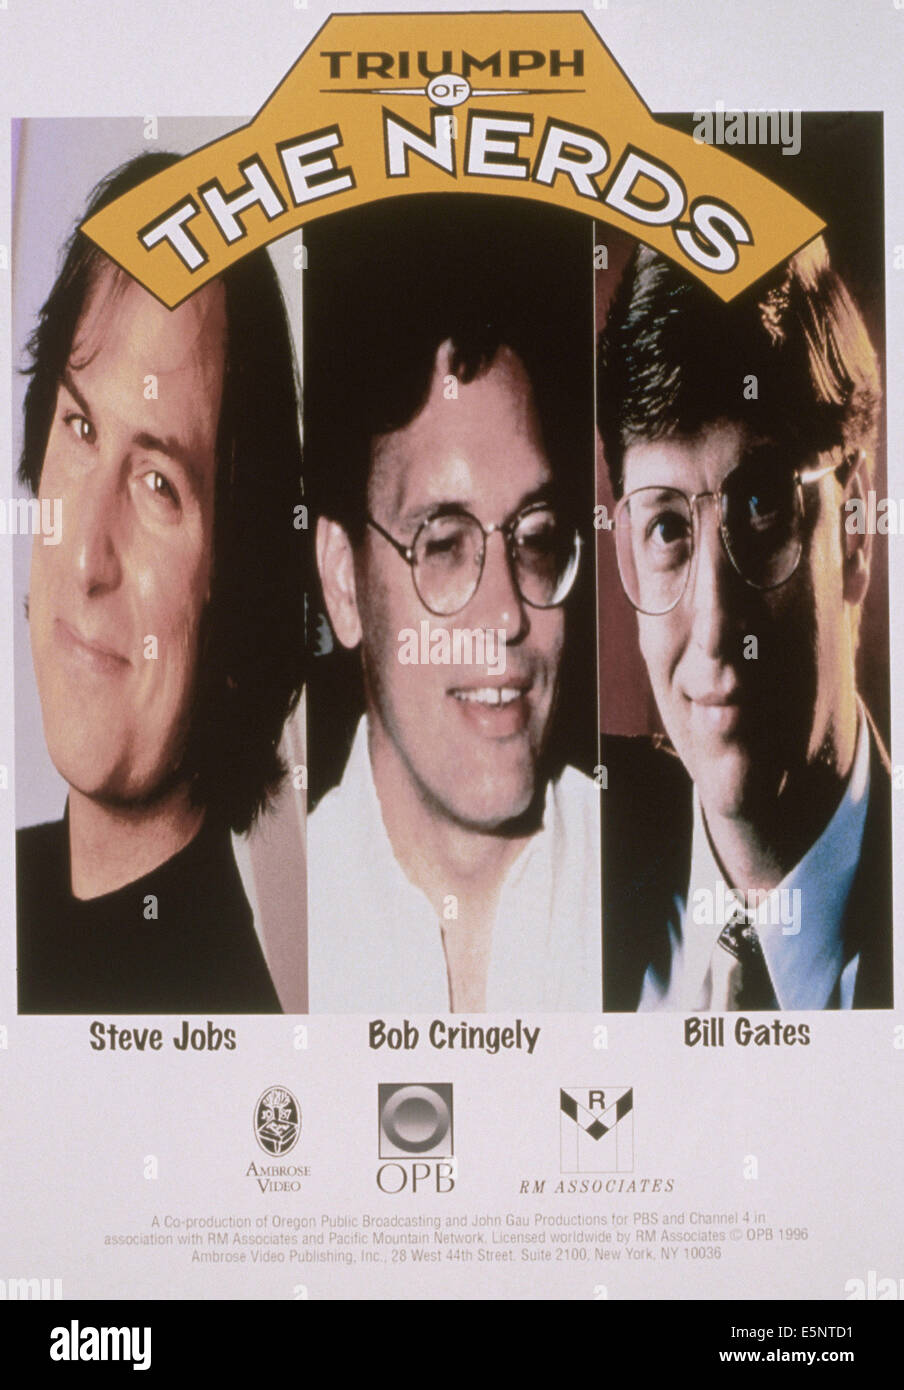 TRIUMPH OF THE NERDS, US Poster, From Left: Steve Jobs, Bob Cringely